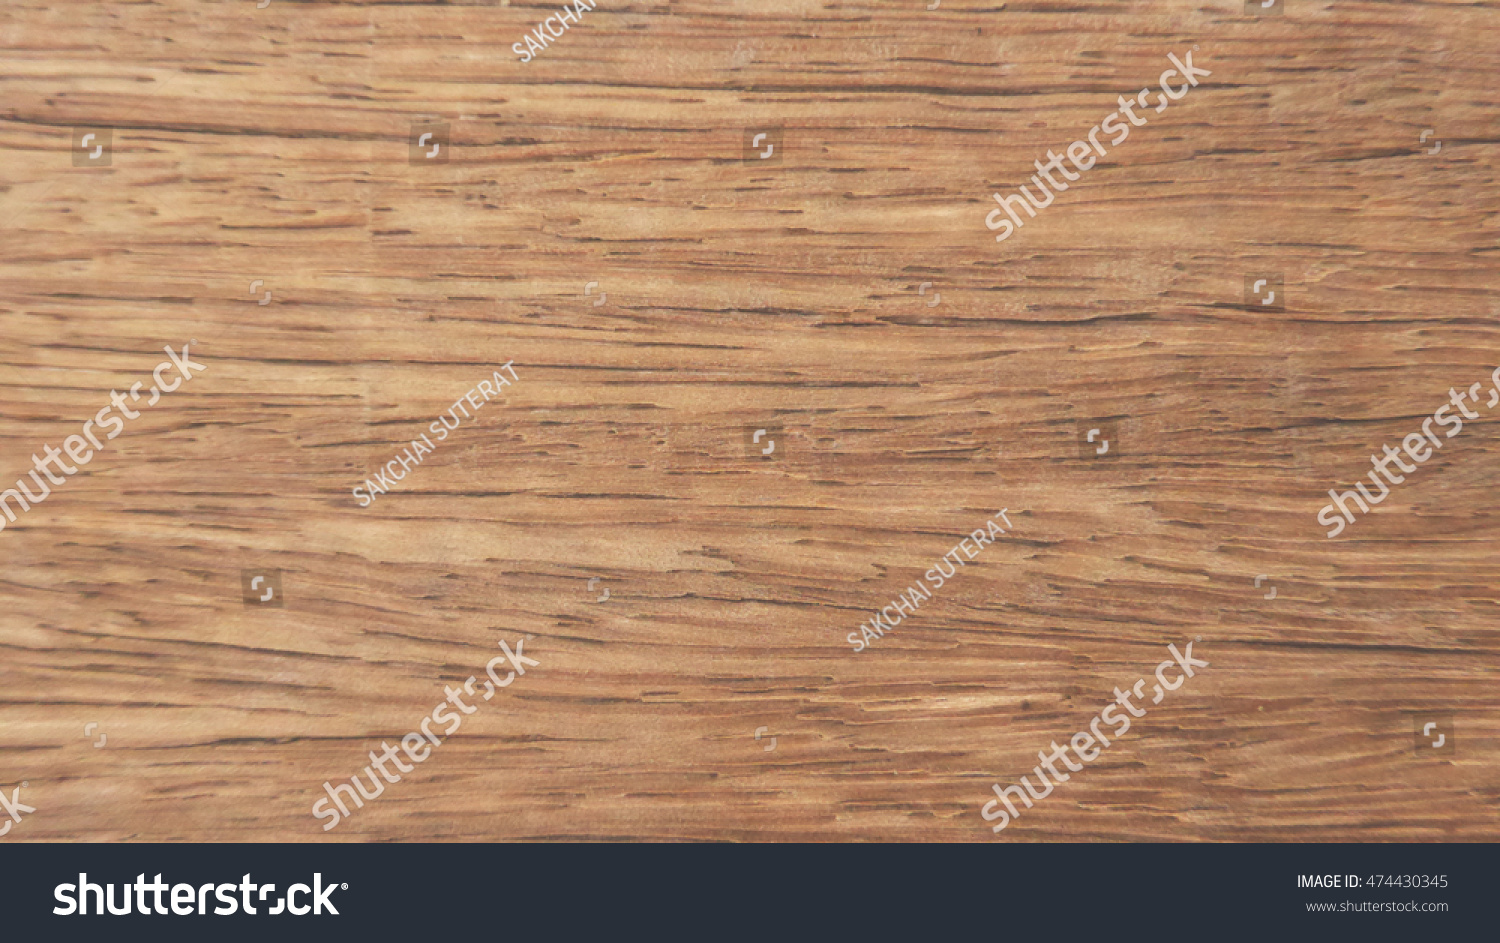 Wooden texture, close up background #474430345